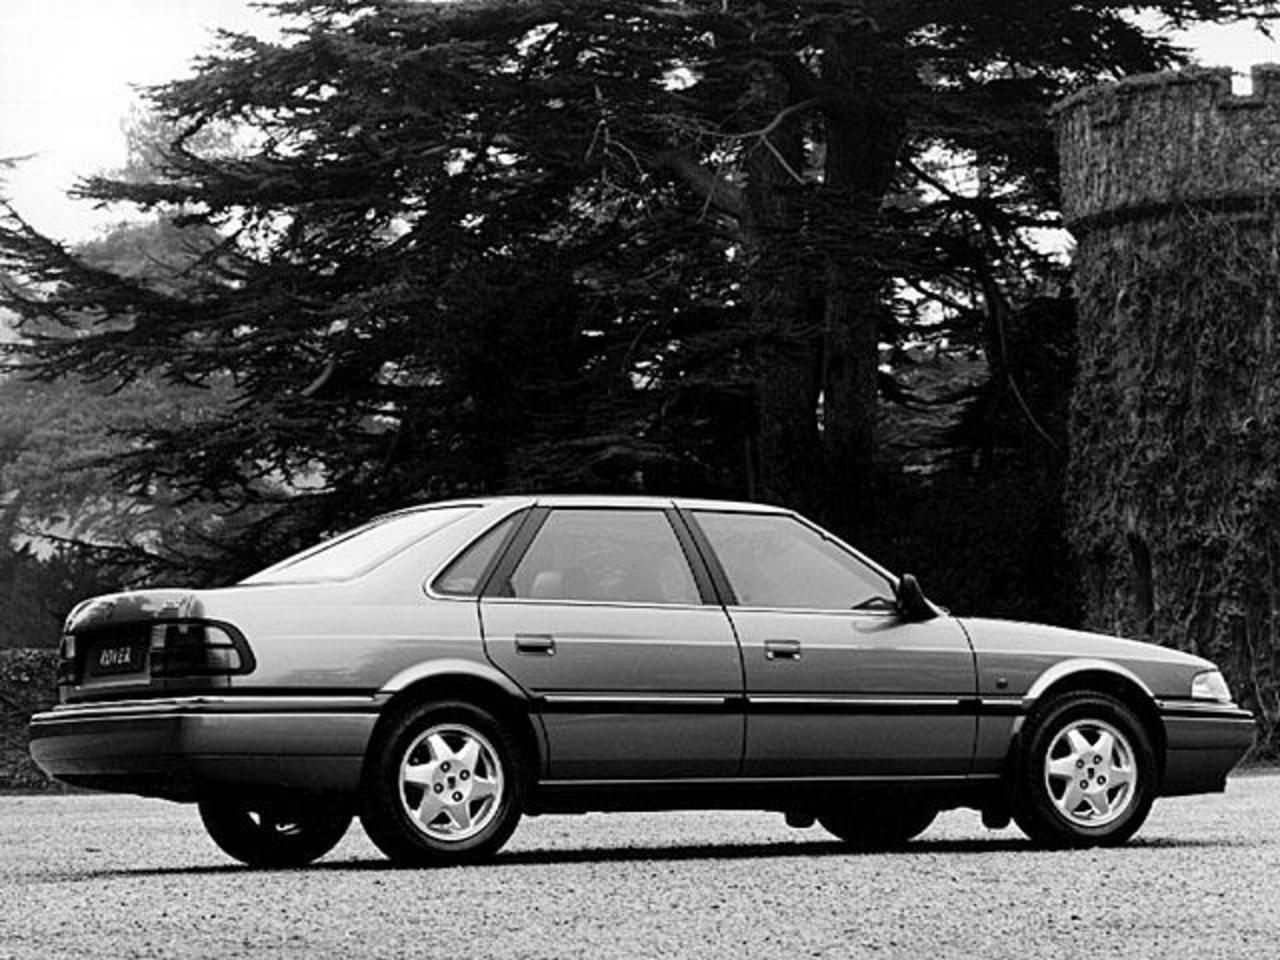 Rover 820 Si 4-door saloon 1992